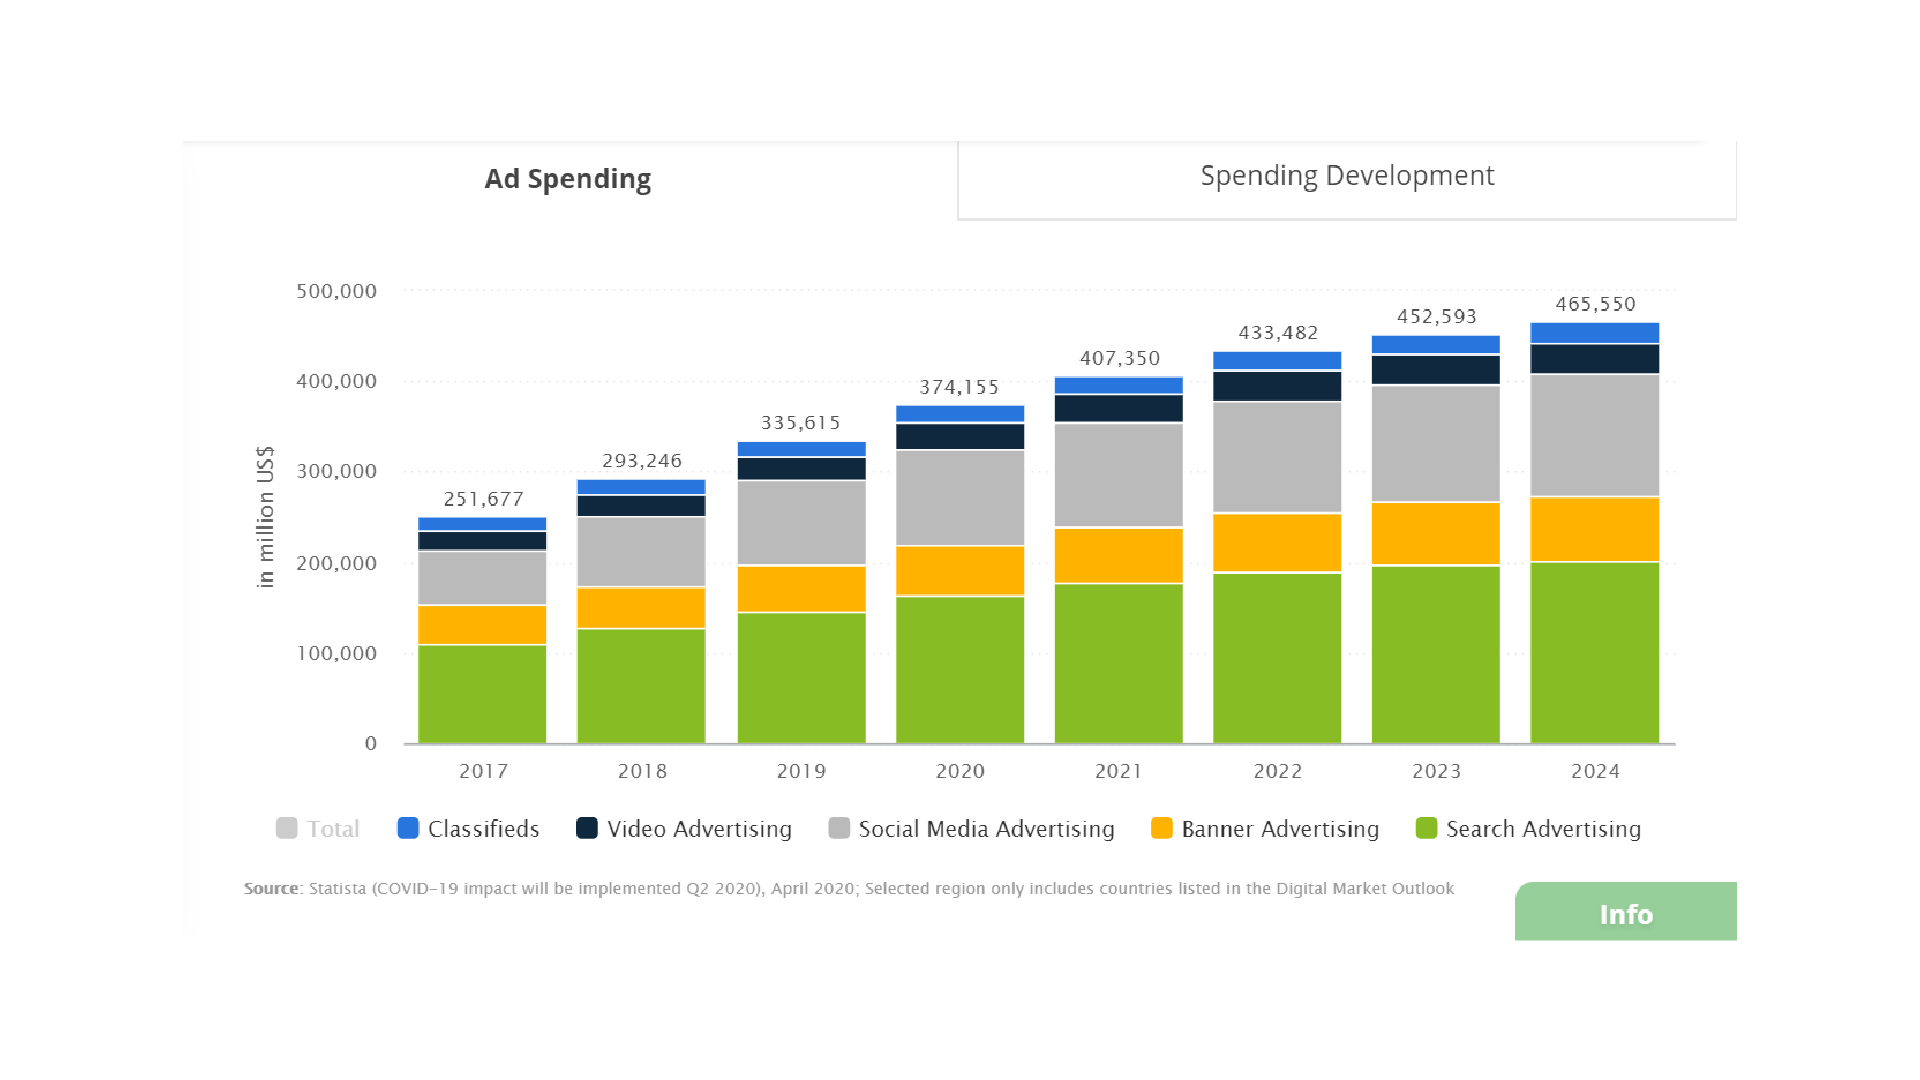 Graph showing the ad spending in 2020